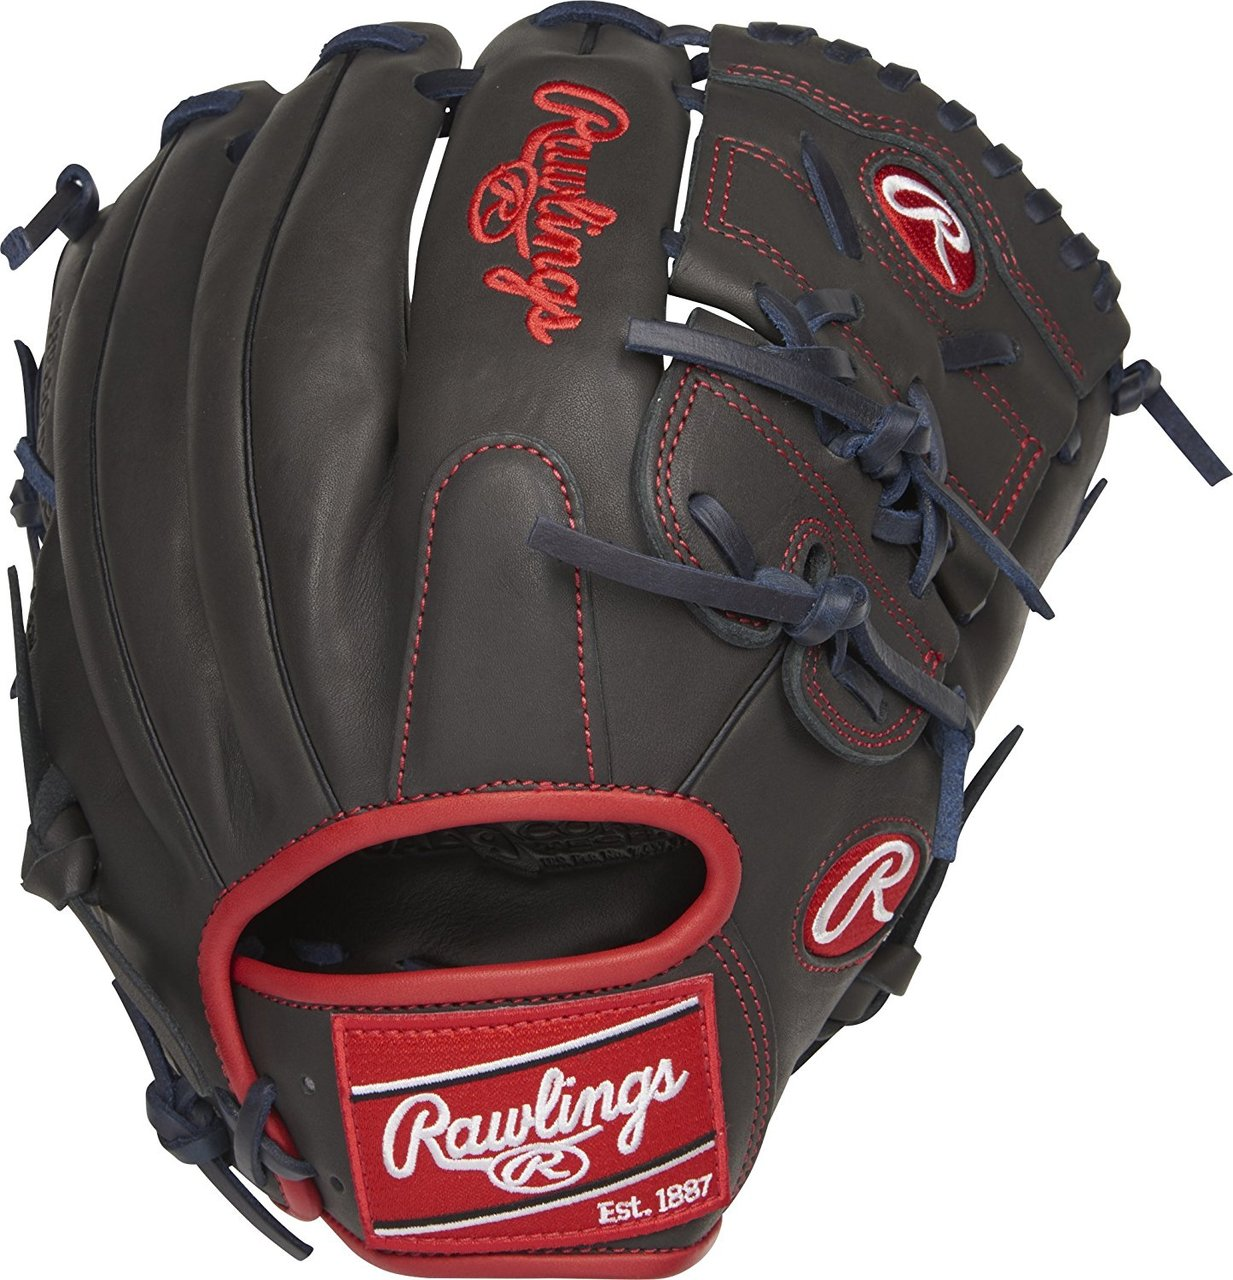 rawlings-gamer-xle-gxle205-9dss-11-75-baseball-glove-right-hand-throw GXLE205-9DSS-RightHandThrow  083321369049 Add some color to your game with a Gamer™ XLE glove!